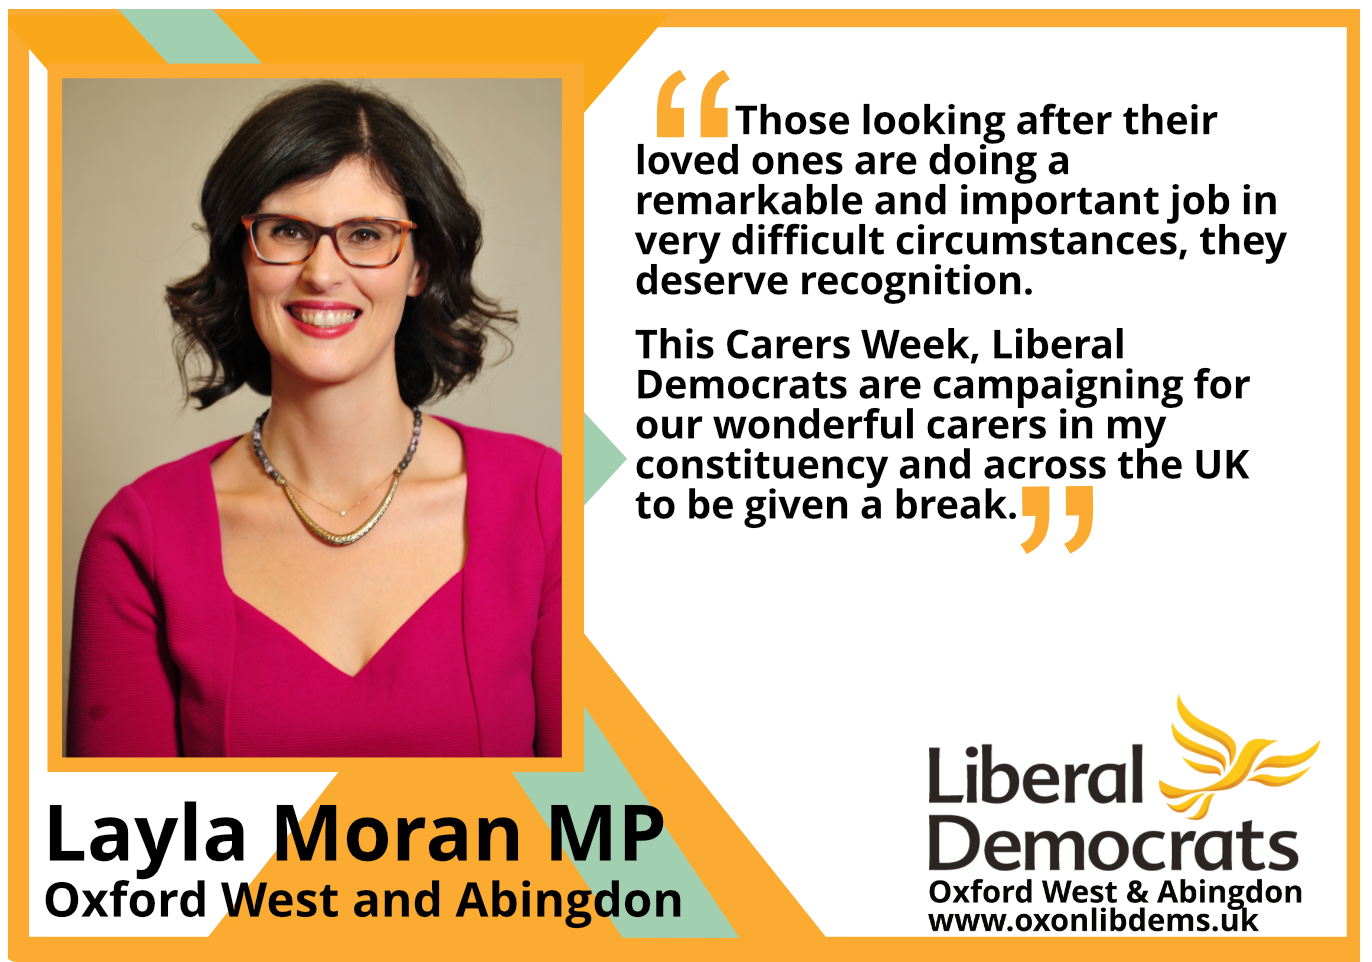 key_This Carers Week, Liberal Democrats are campaigning for our wonderful carers in my constituency and across the UK to be given a break.